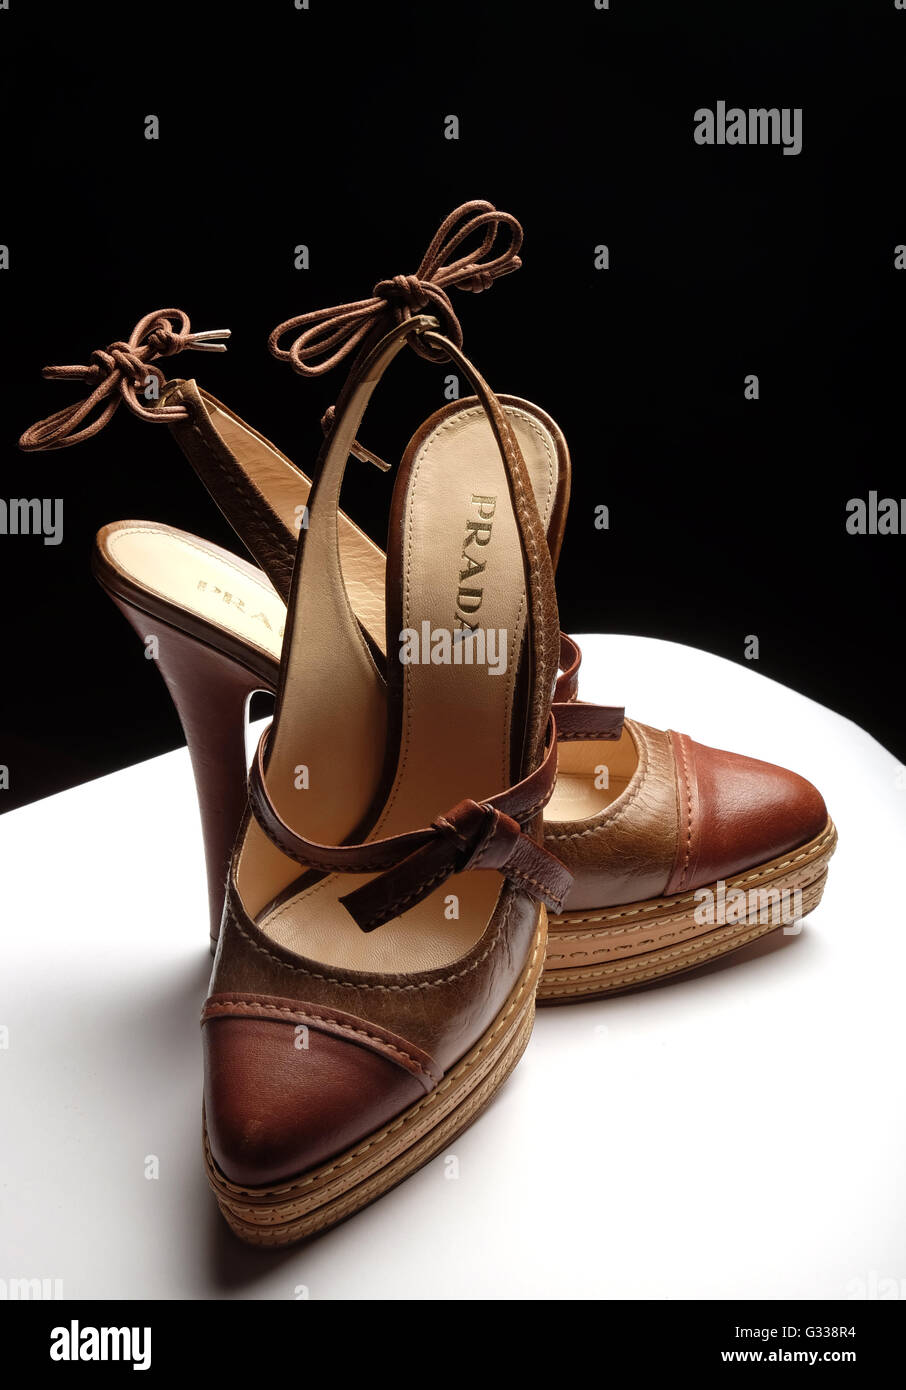 cca0c07d3066 Hand Made Shoes Stock Photos   Hand Made Shoes Stock Images - Alamy